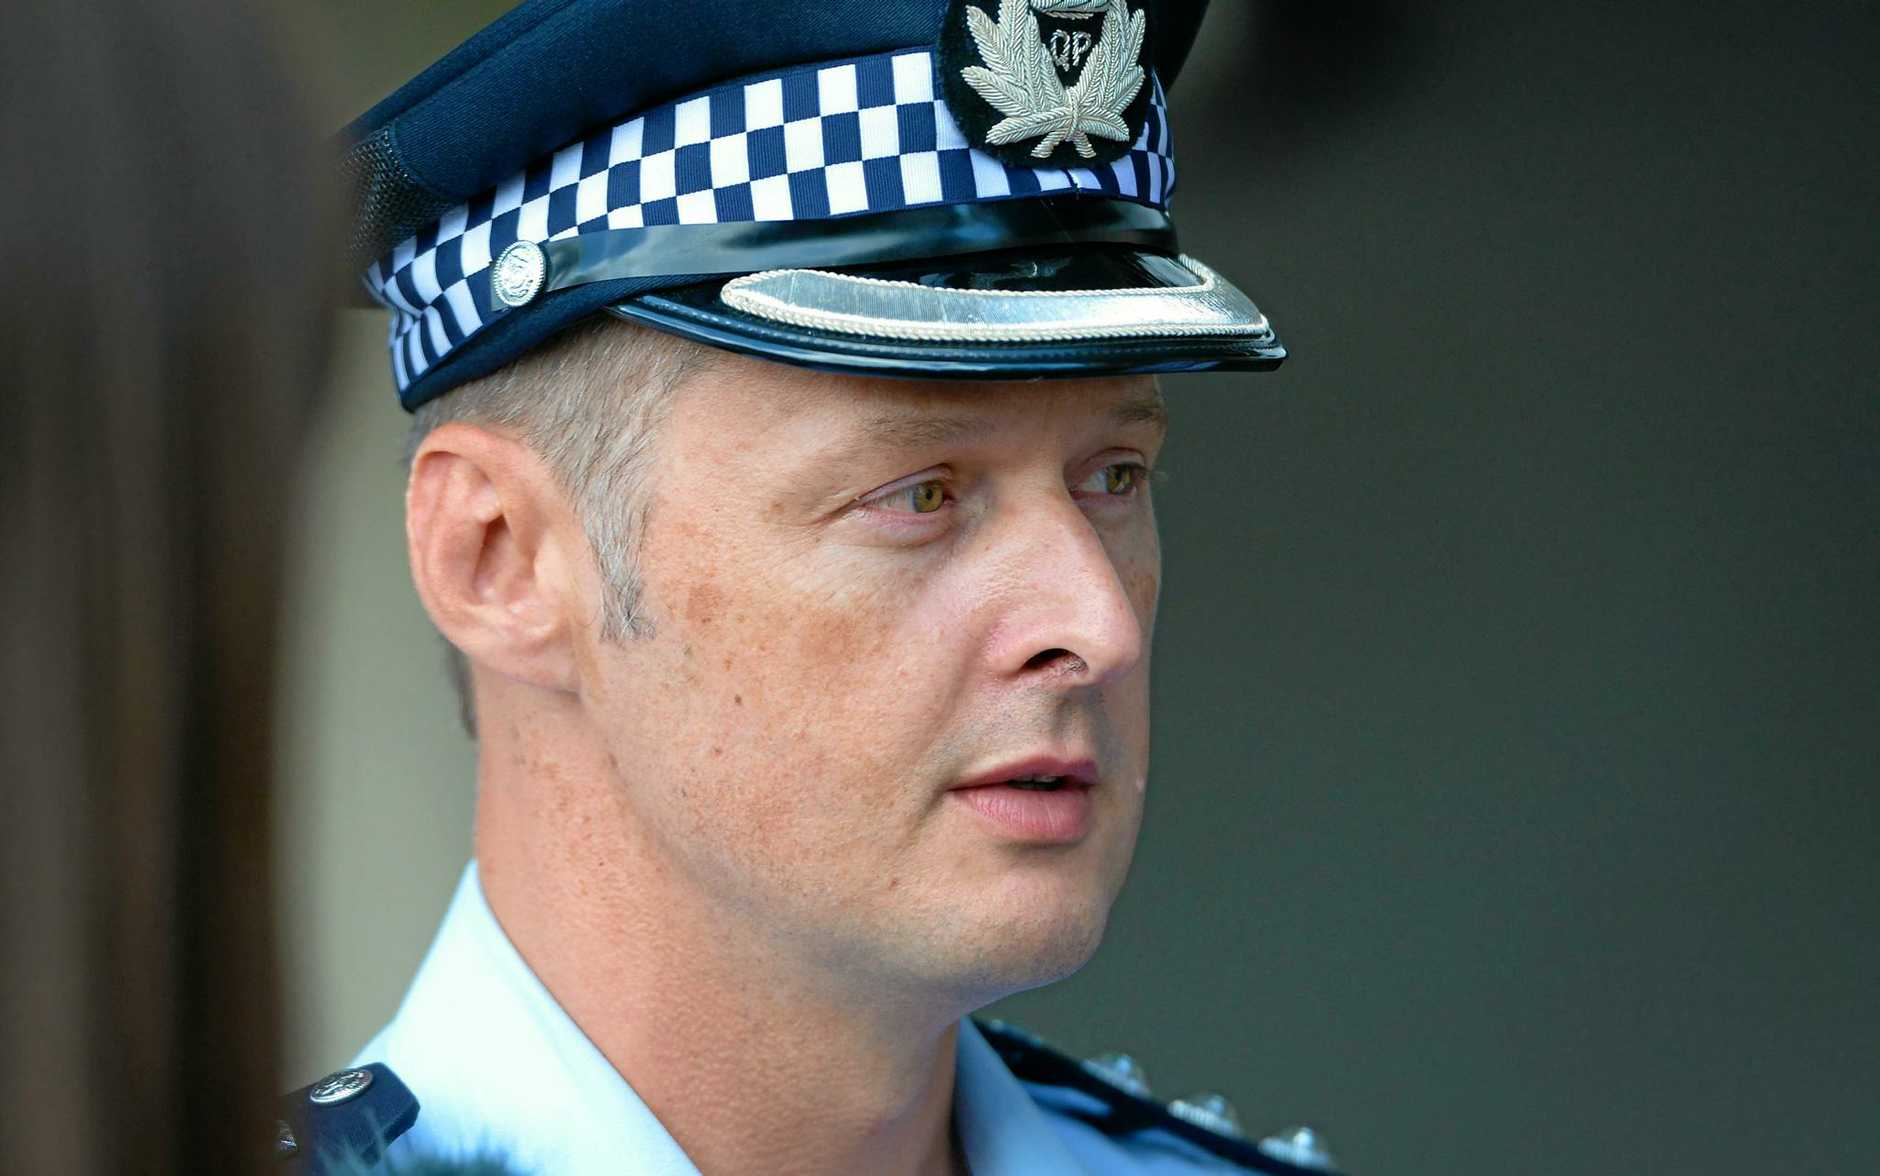 Police inspector Adam Muir at a press conference in Rockhampton.